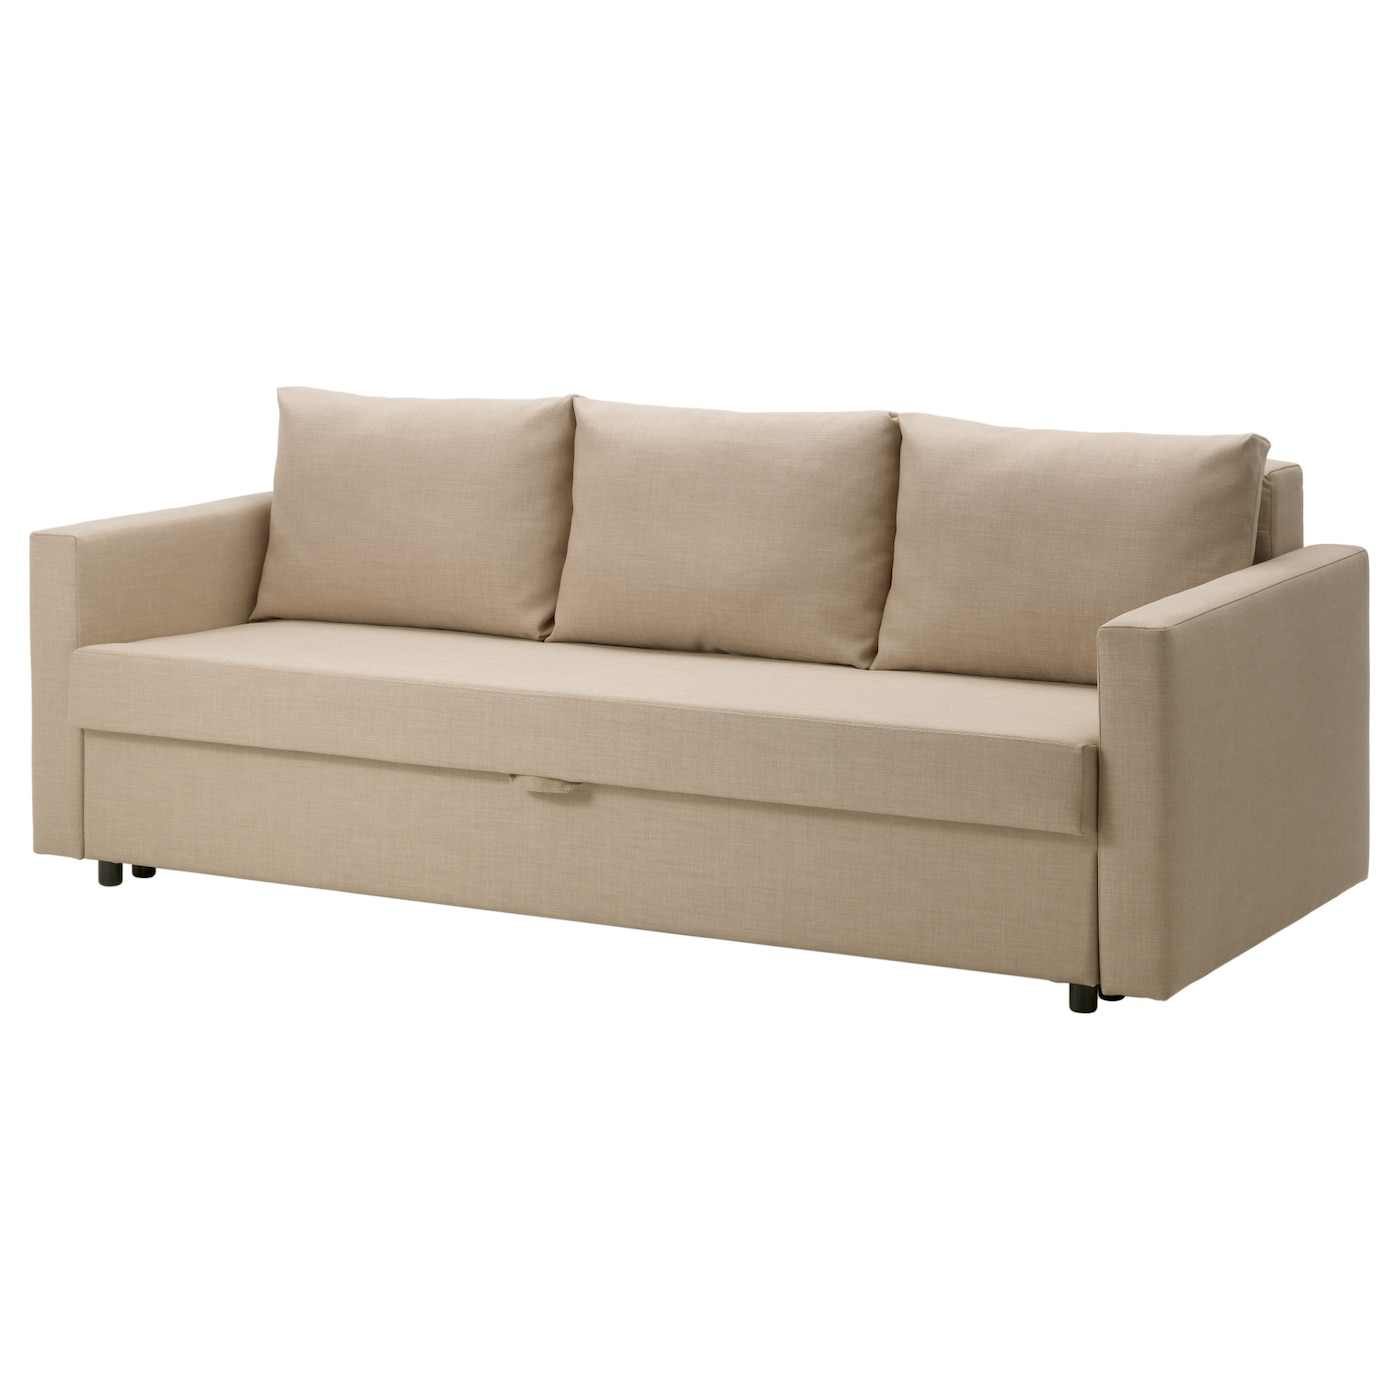 Friheten three seat sofa bed skiftebo beige ikea Ikea divan beds